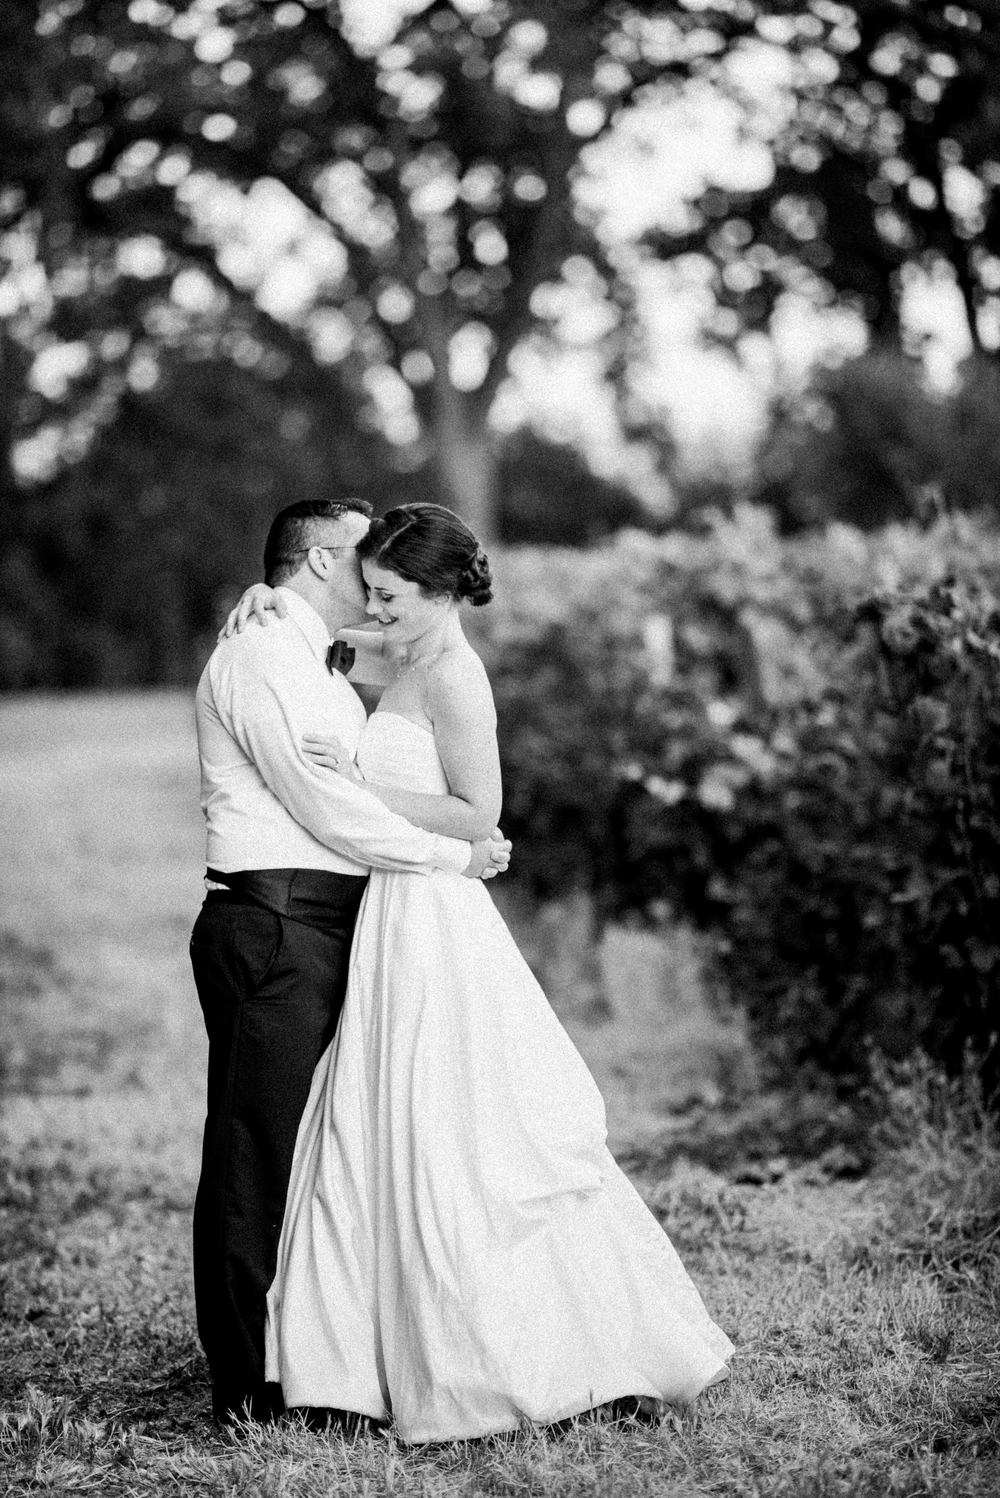 Bride and groom portrait at Charles Krug Winery St. Helena wedding